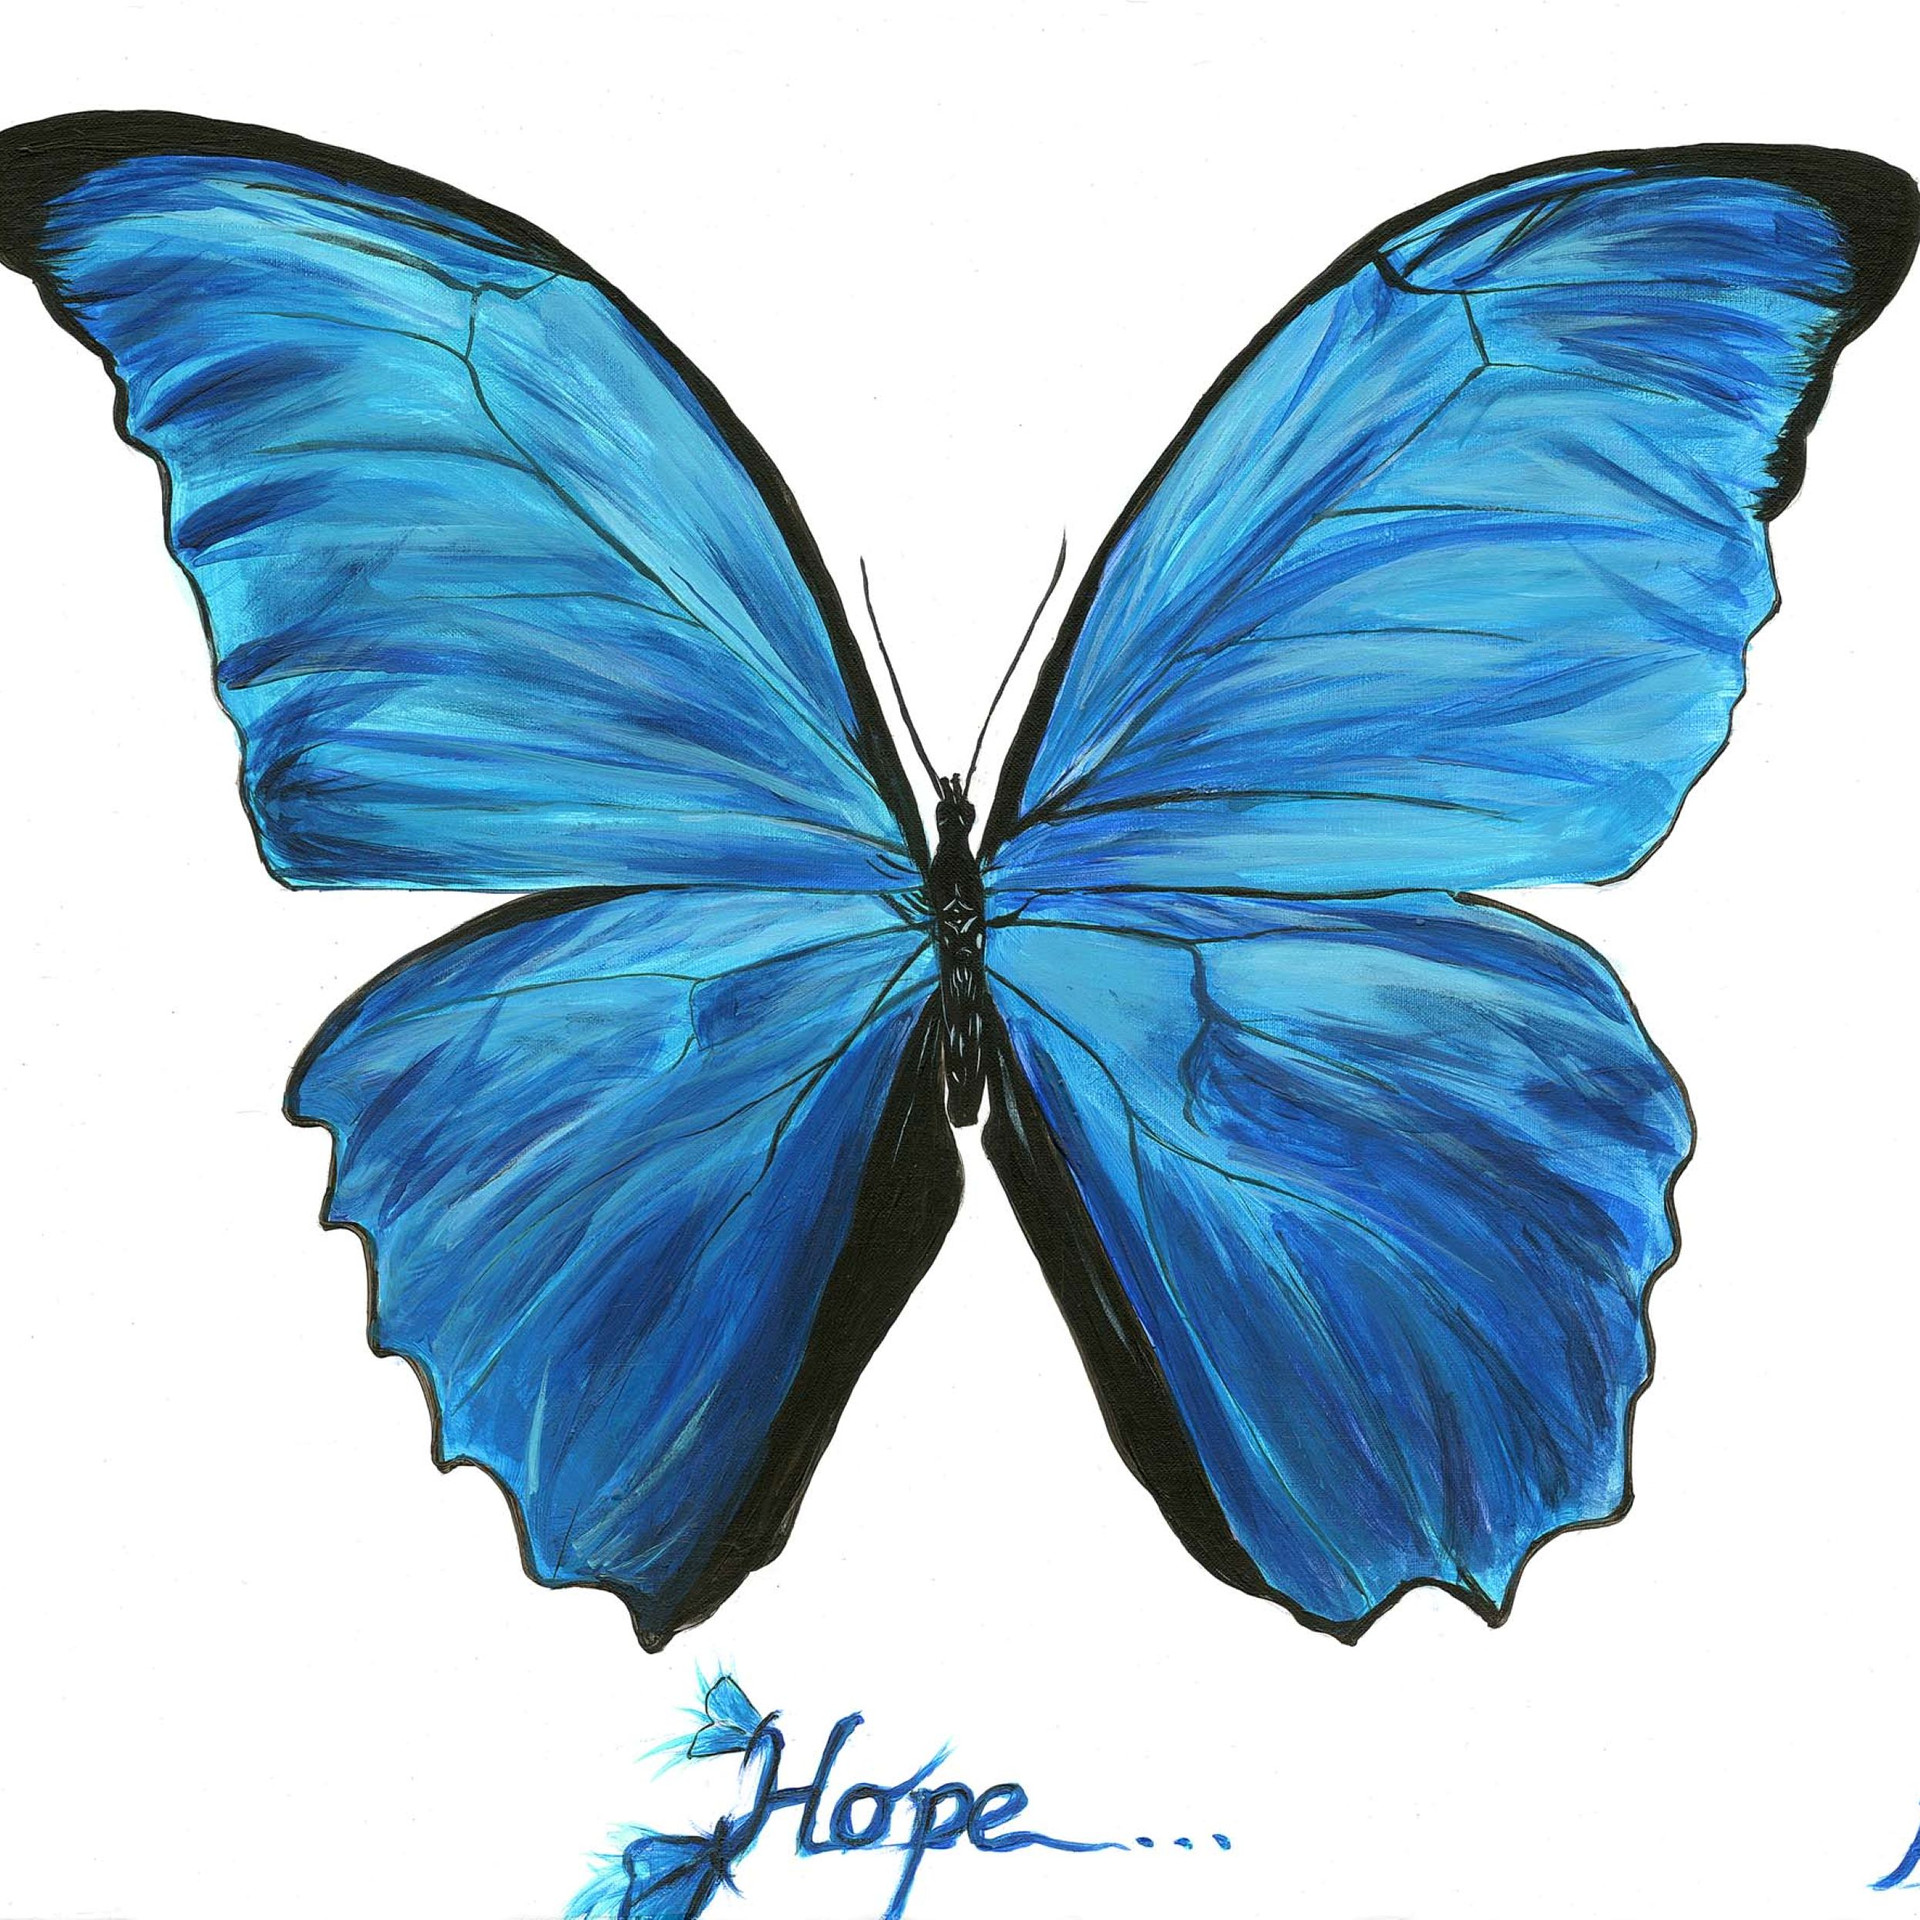 Blue Morpho, Butterfly of Hope , acrylic